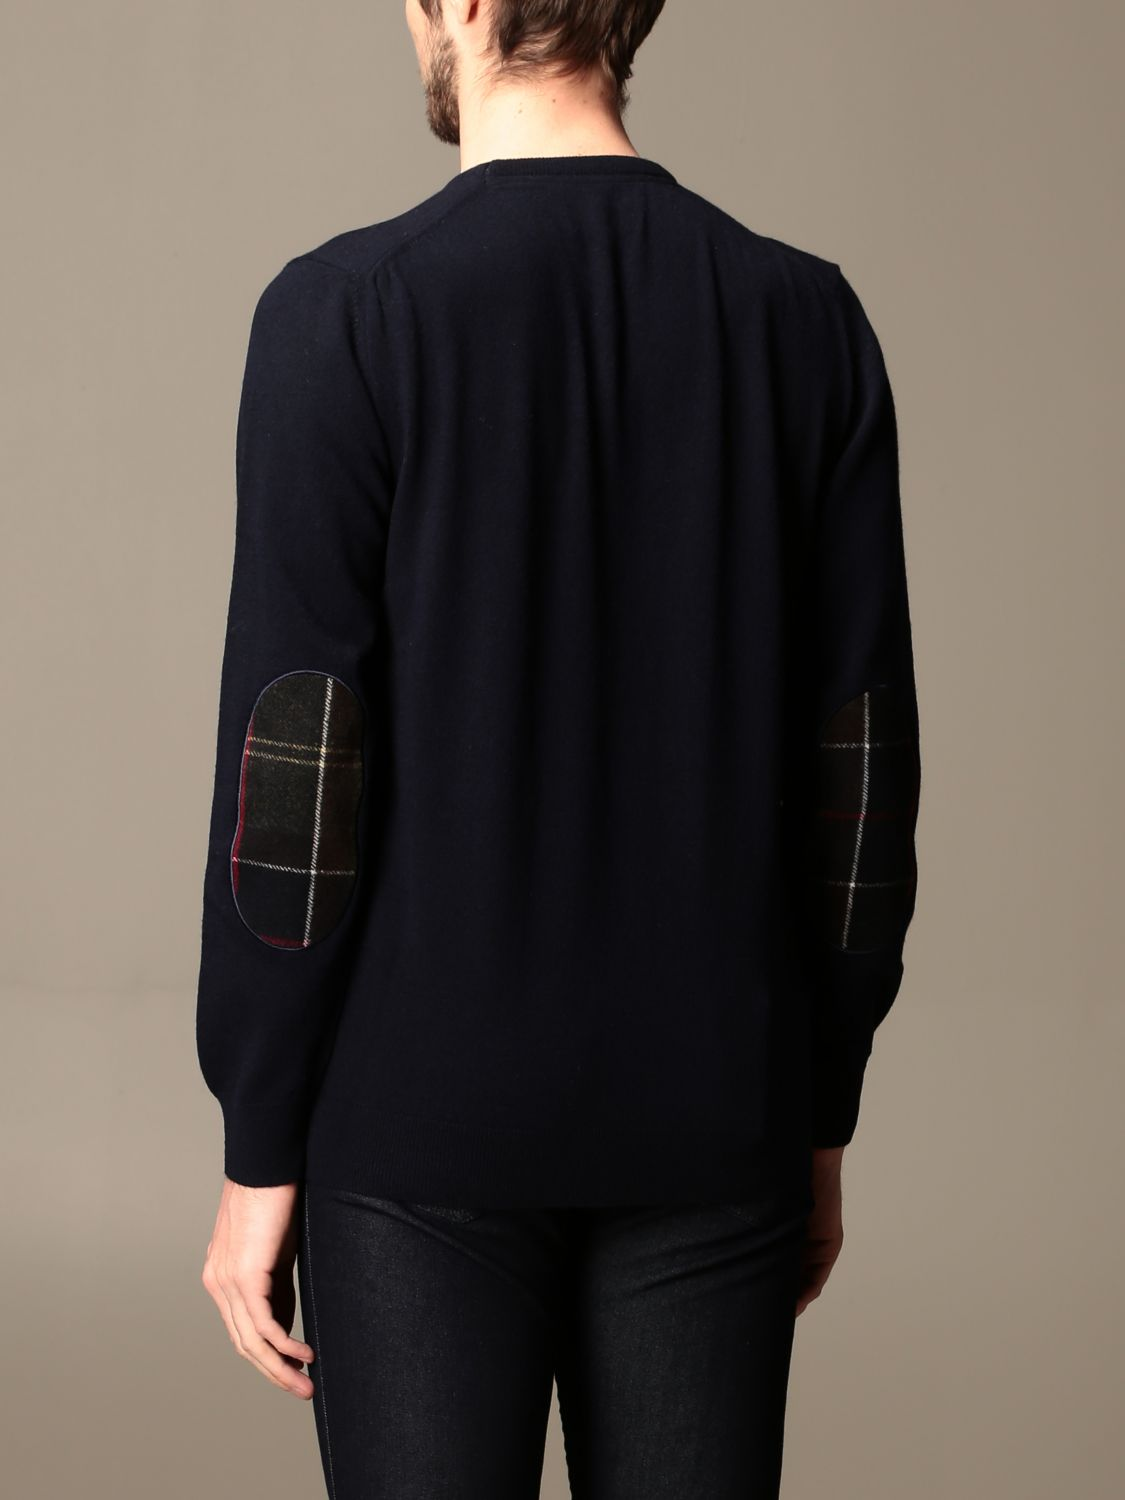 Sweater Barbour: Barbour crewneck sweater with tartan patches blue 2